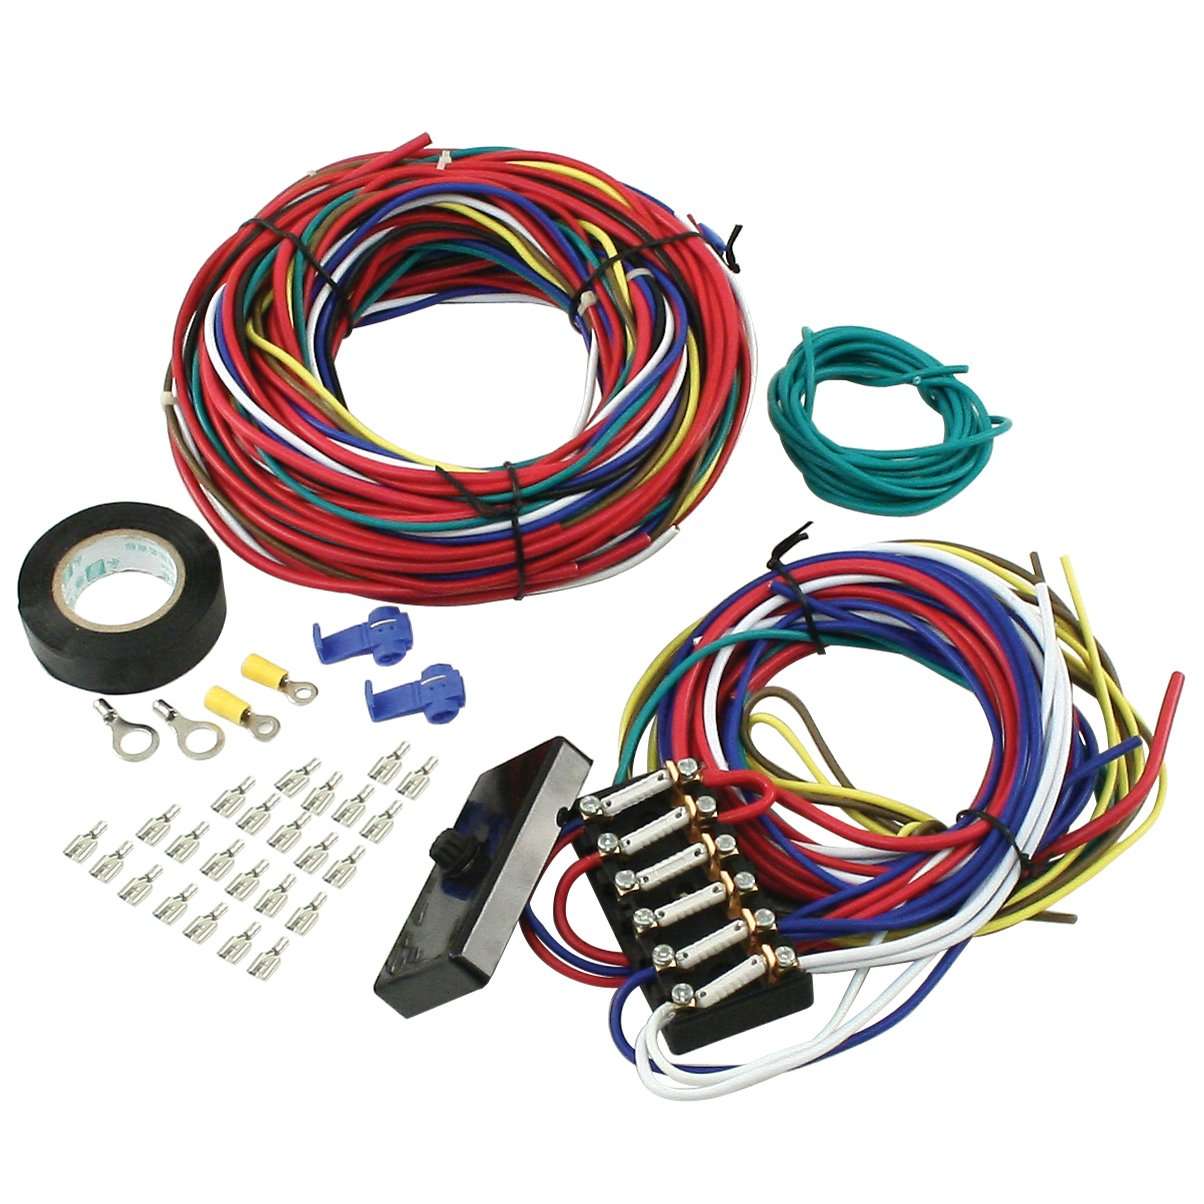 712Fyt3MSiL._SL1204_ amazon com empi 00 9466 0 wire loom kit, vw buggy, sand rail vw sandrail wiring harness at gsmx.co